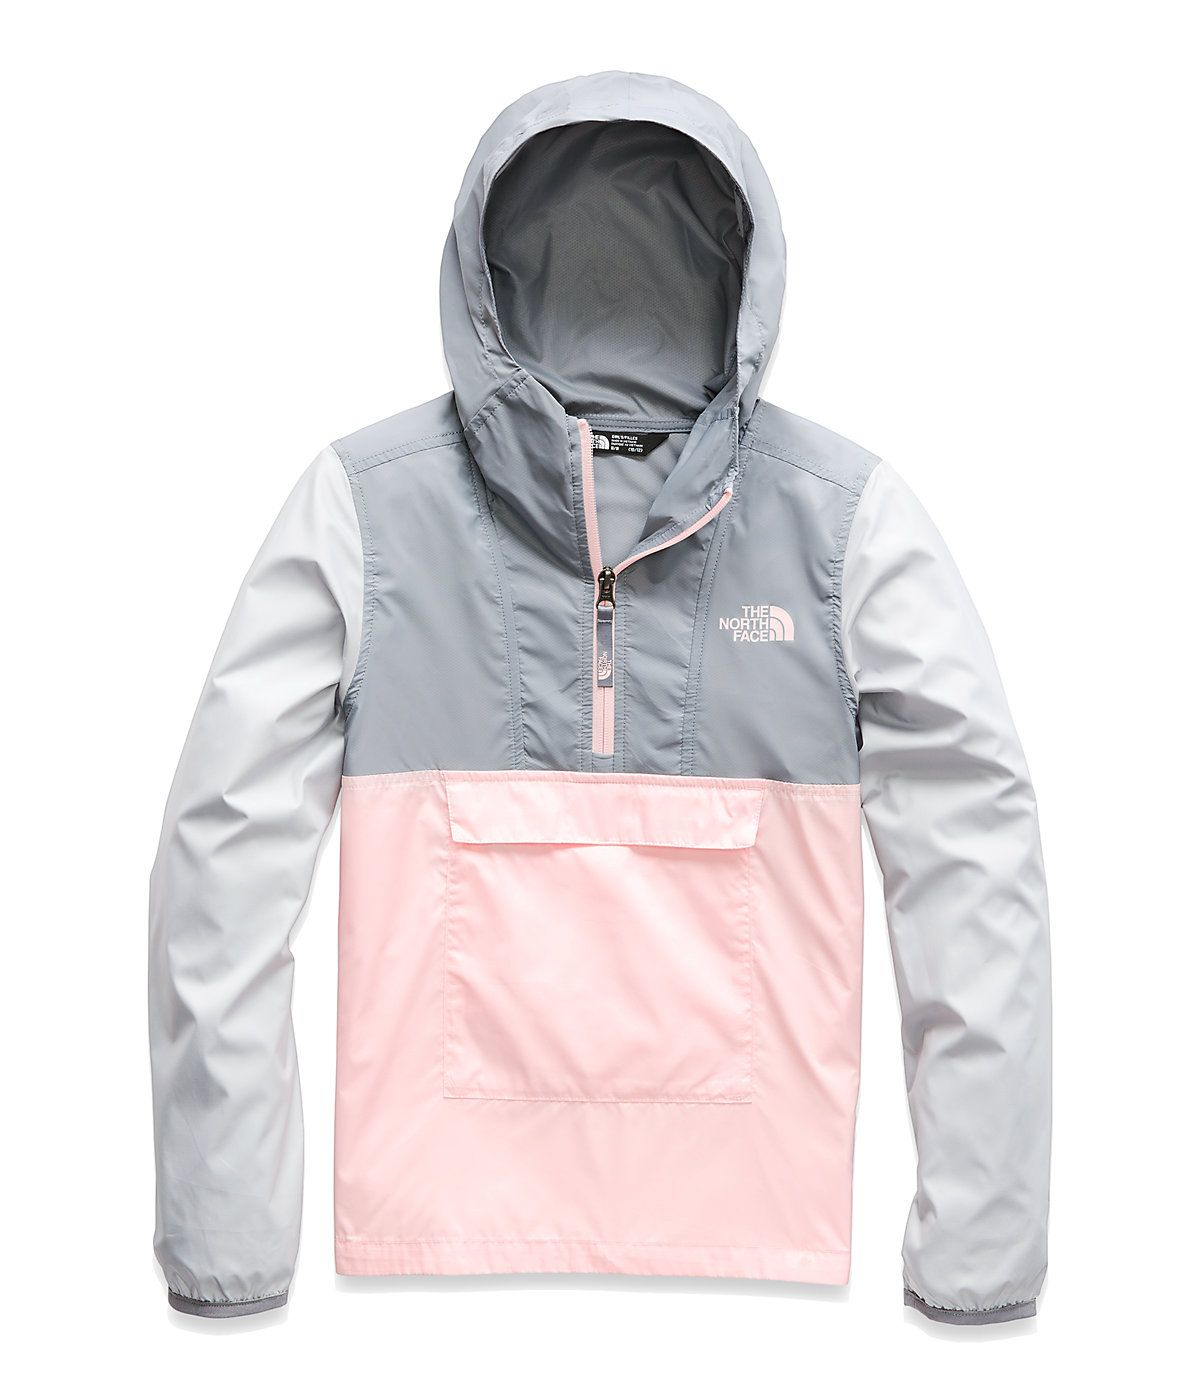 Youth Fanorak Jacket Free Shipping The North Face North Face Women North Face Girls Anorak Jacket [ 1396 x 1200 Pixel ]